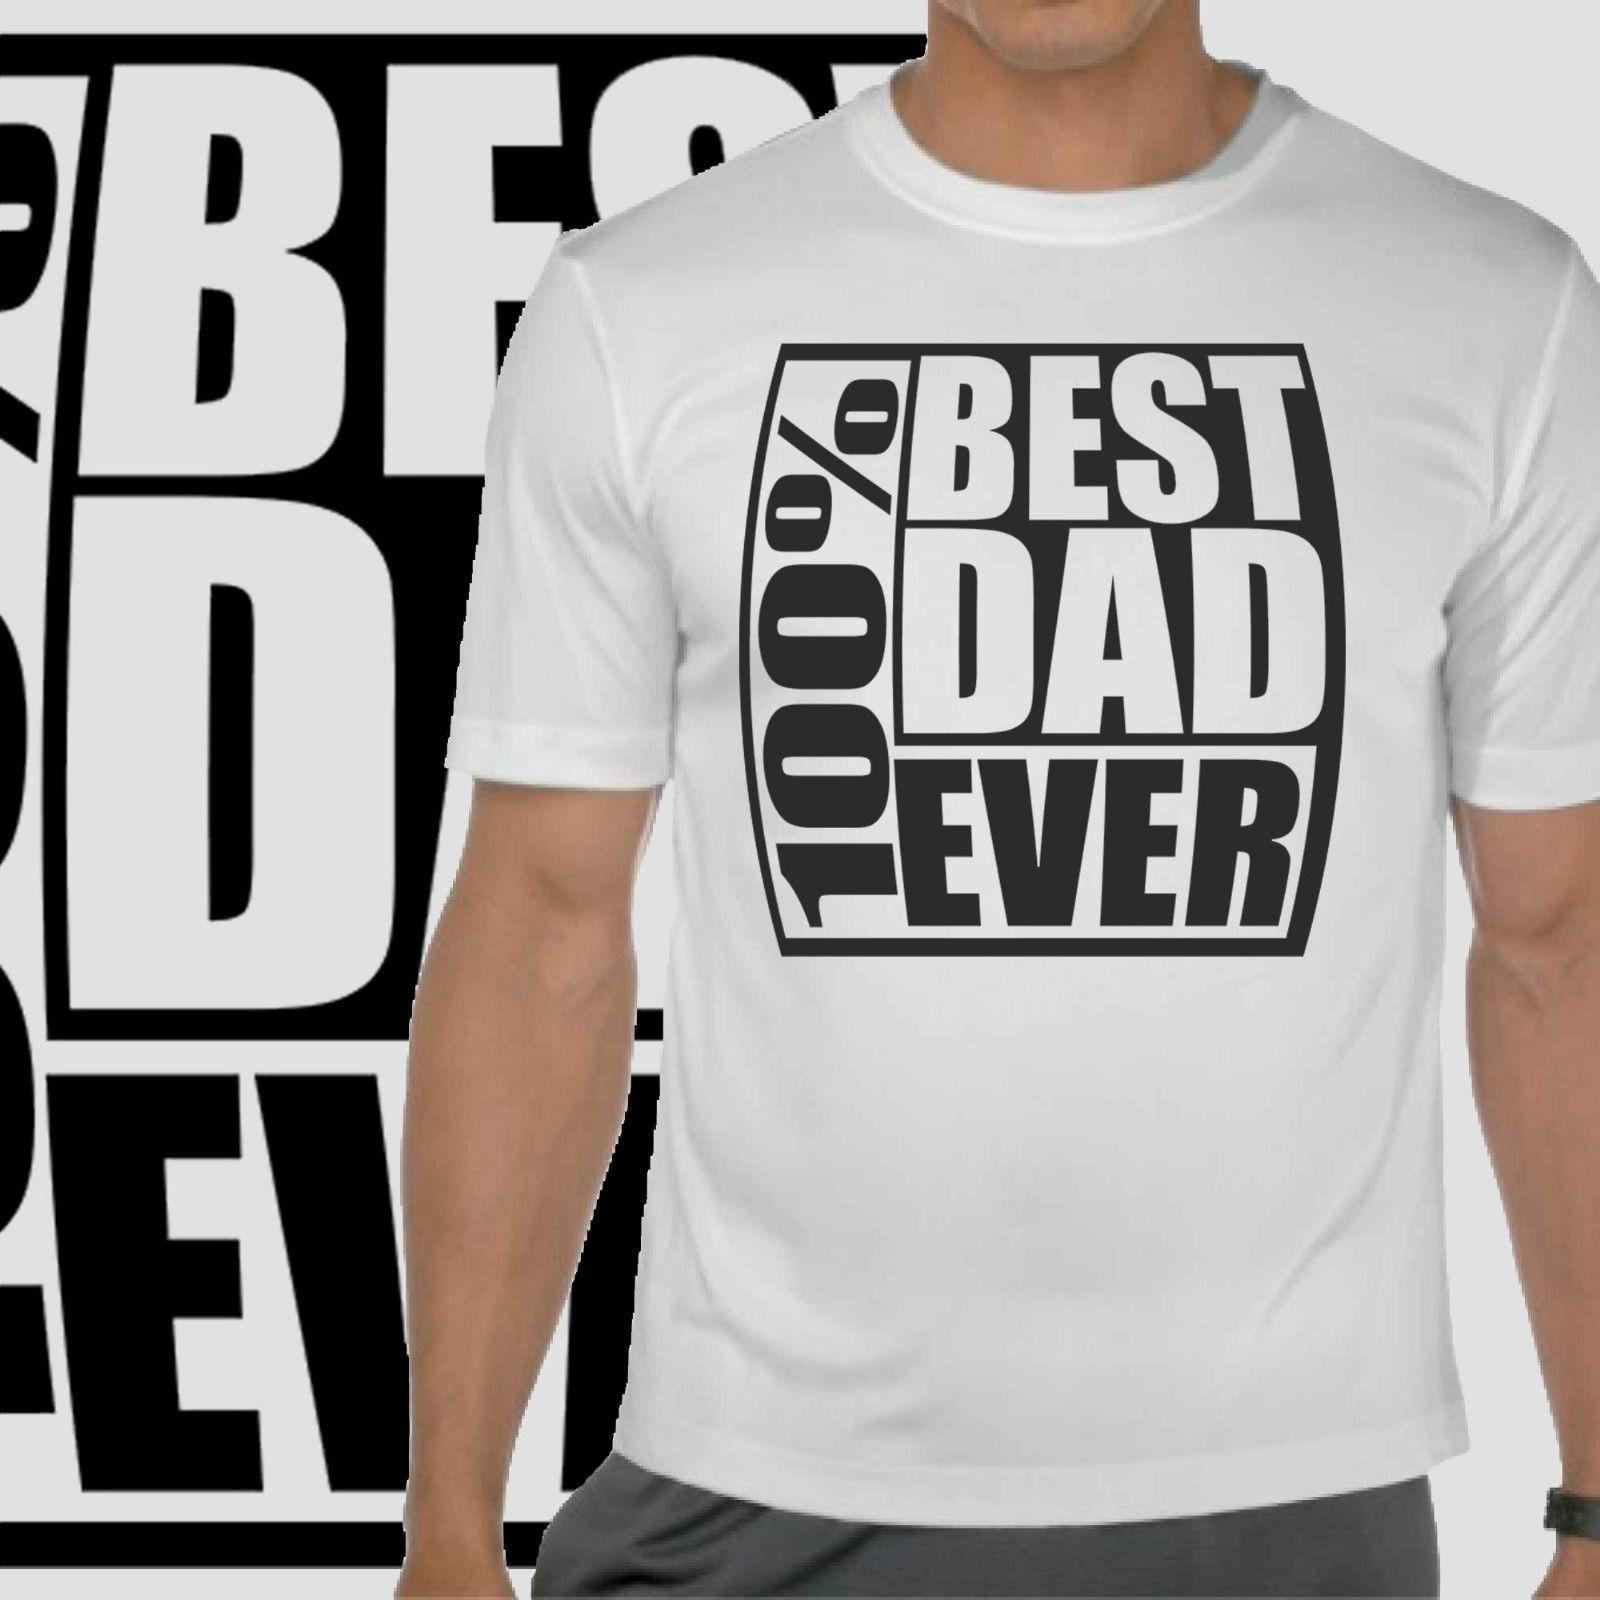 d56afa77 Best Dad Ever Tshirt Fathers Day Gift Dad T Birthday Gift Daddy T Shirt  Funny Unisex Tshirt Top Best T Shirt Online Buy Funky T Shirts Online From  ...